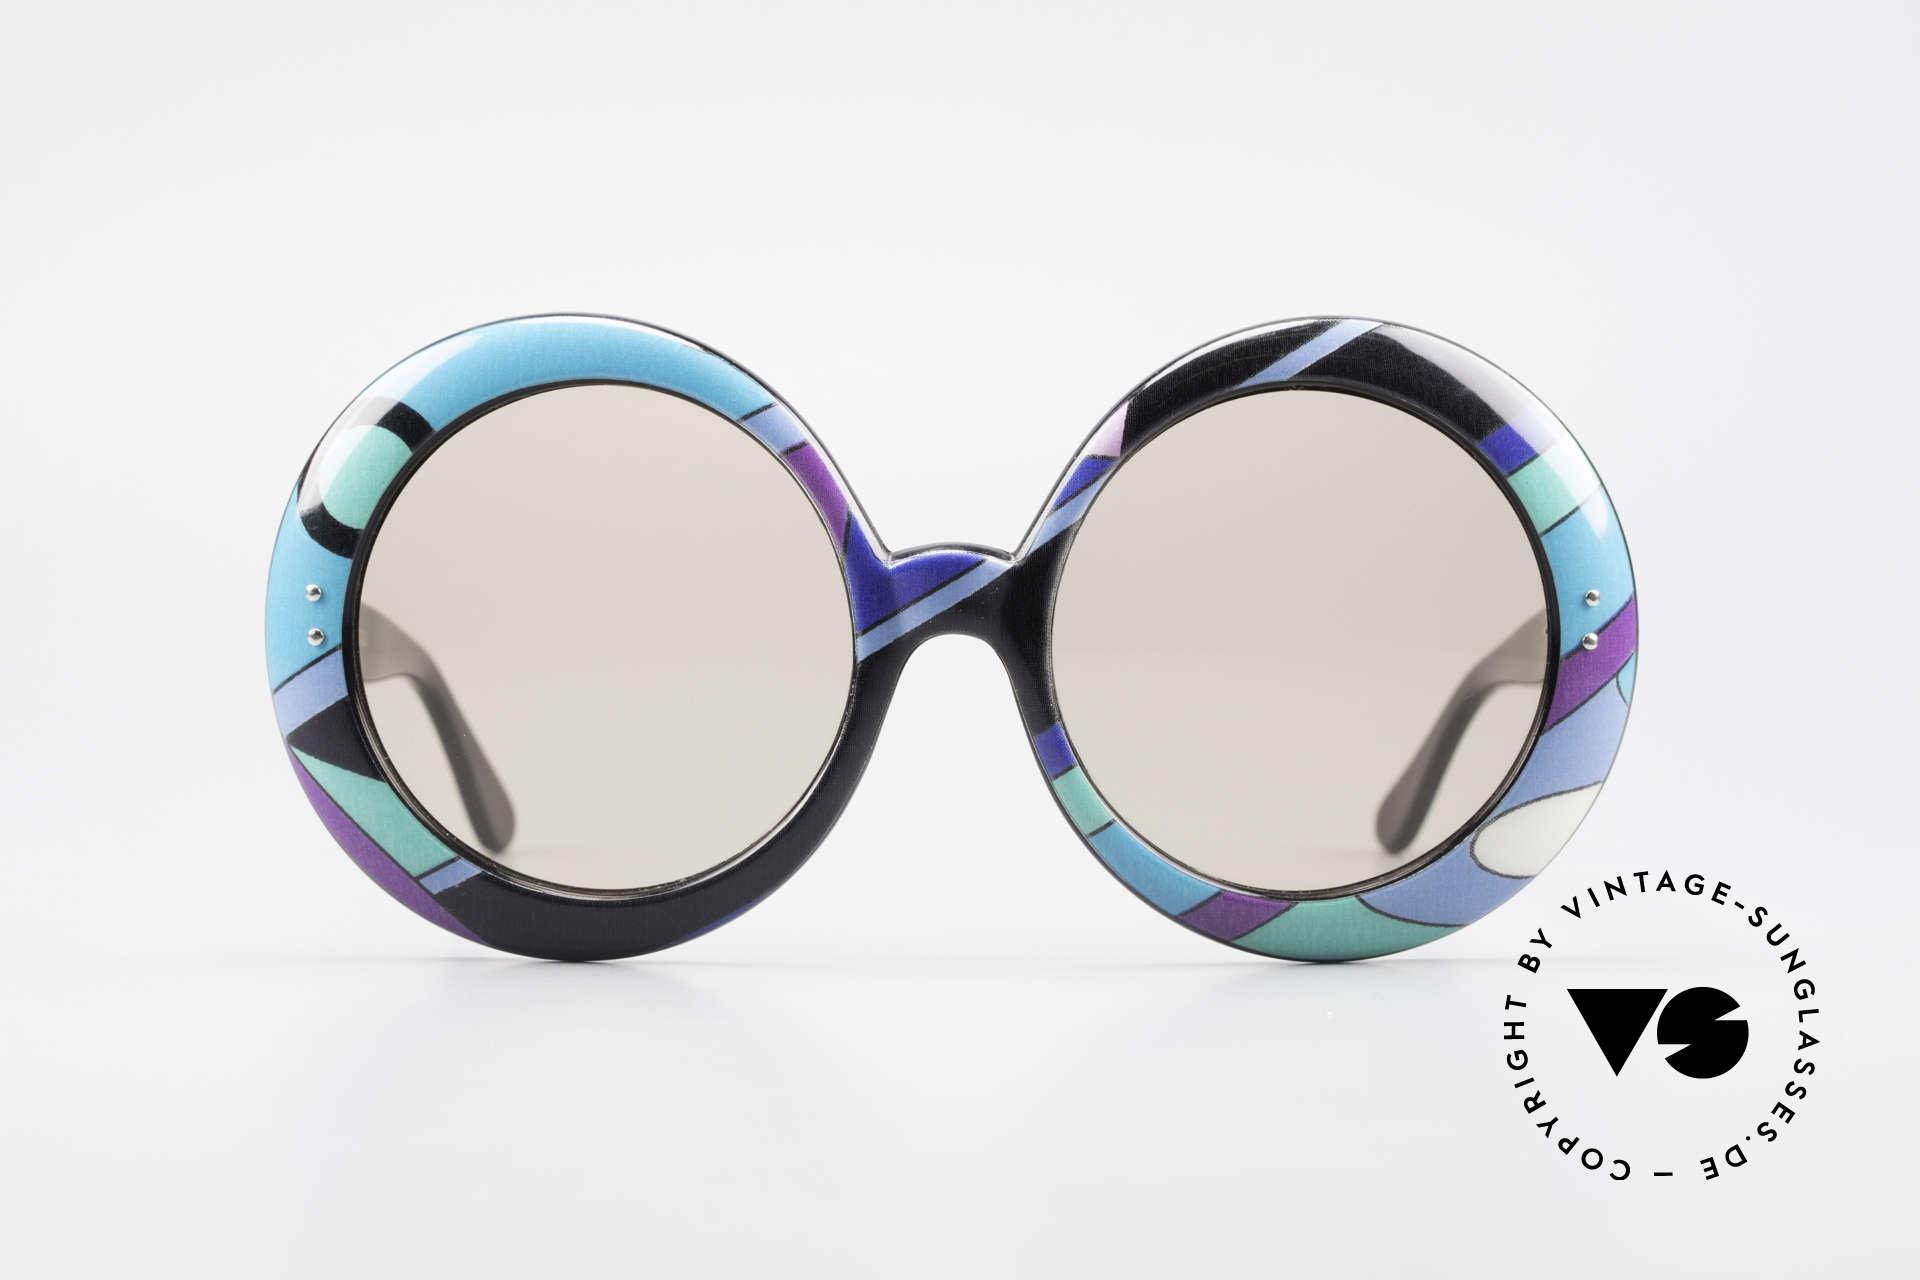 Emilio Pucci XXL Oversized 60's Sunglasses, world famous frame pattern; futuristic & sophisticated, Made for Women